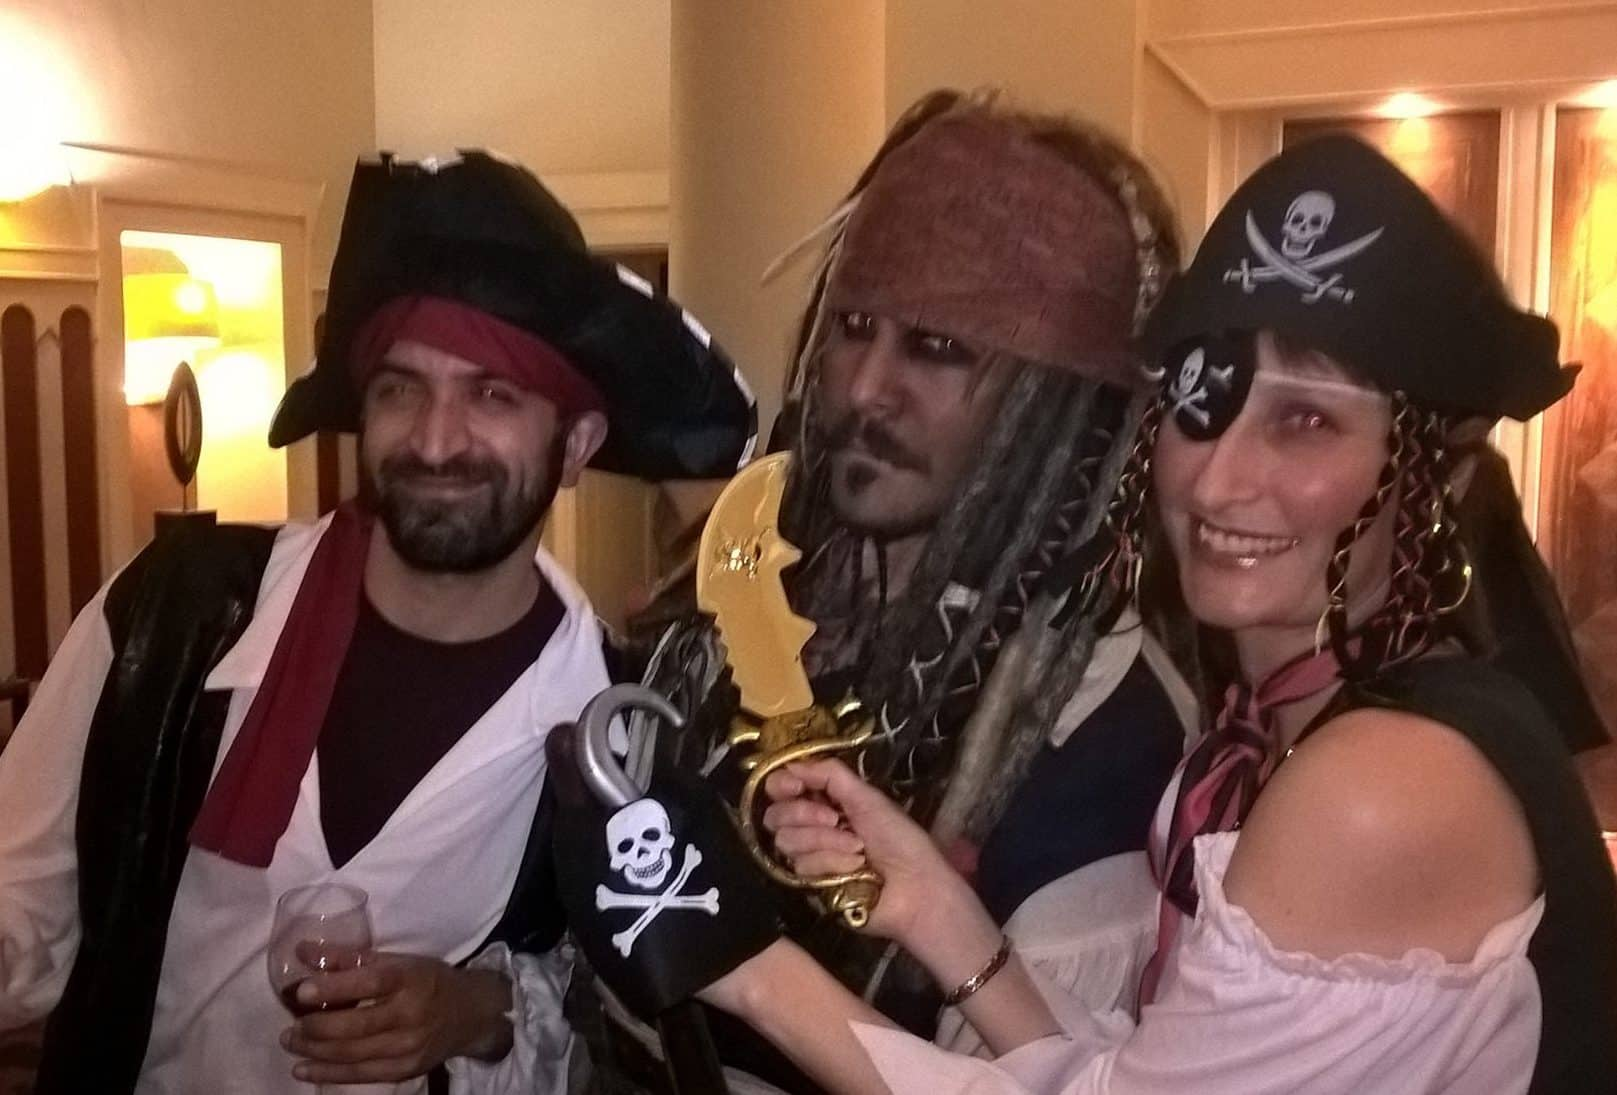 pirates of the caribbean lookalike